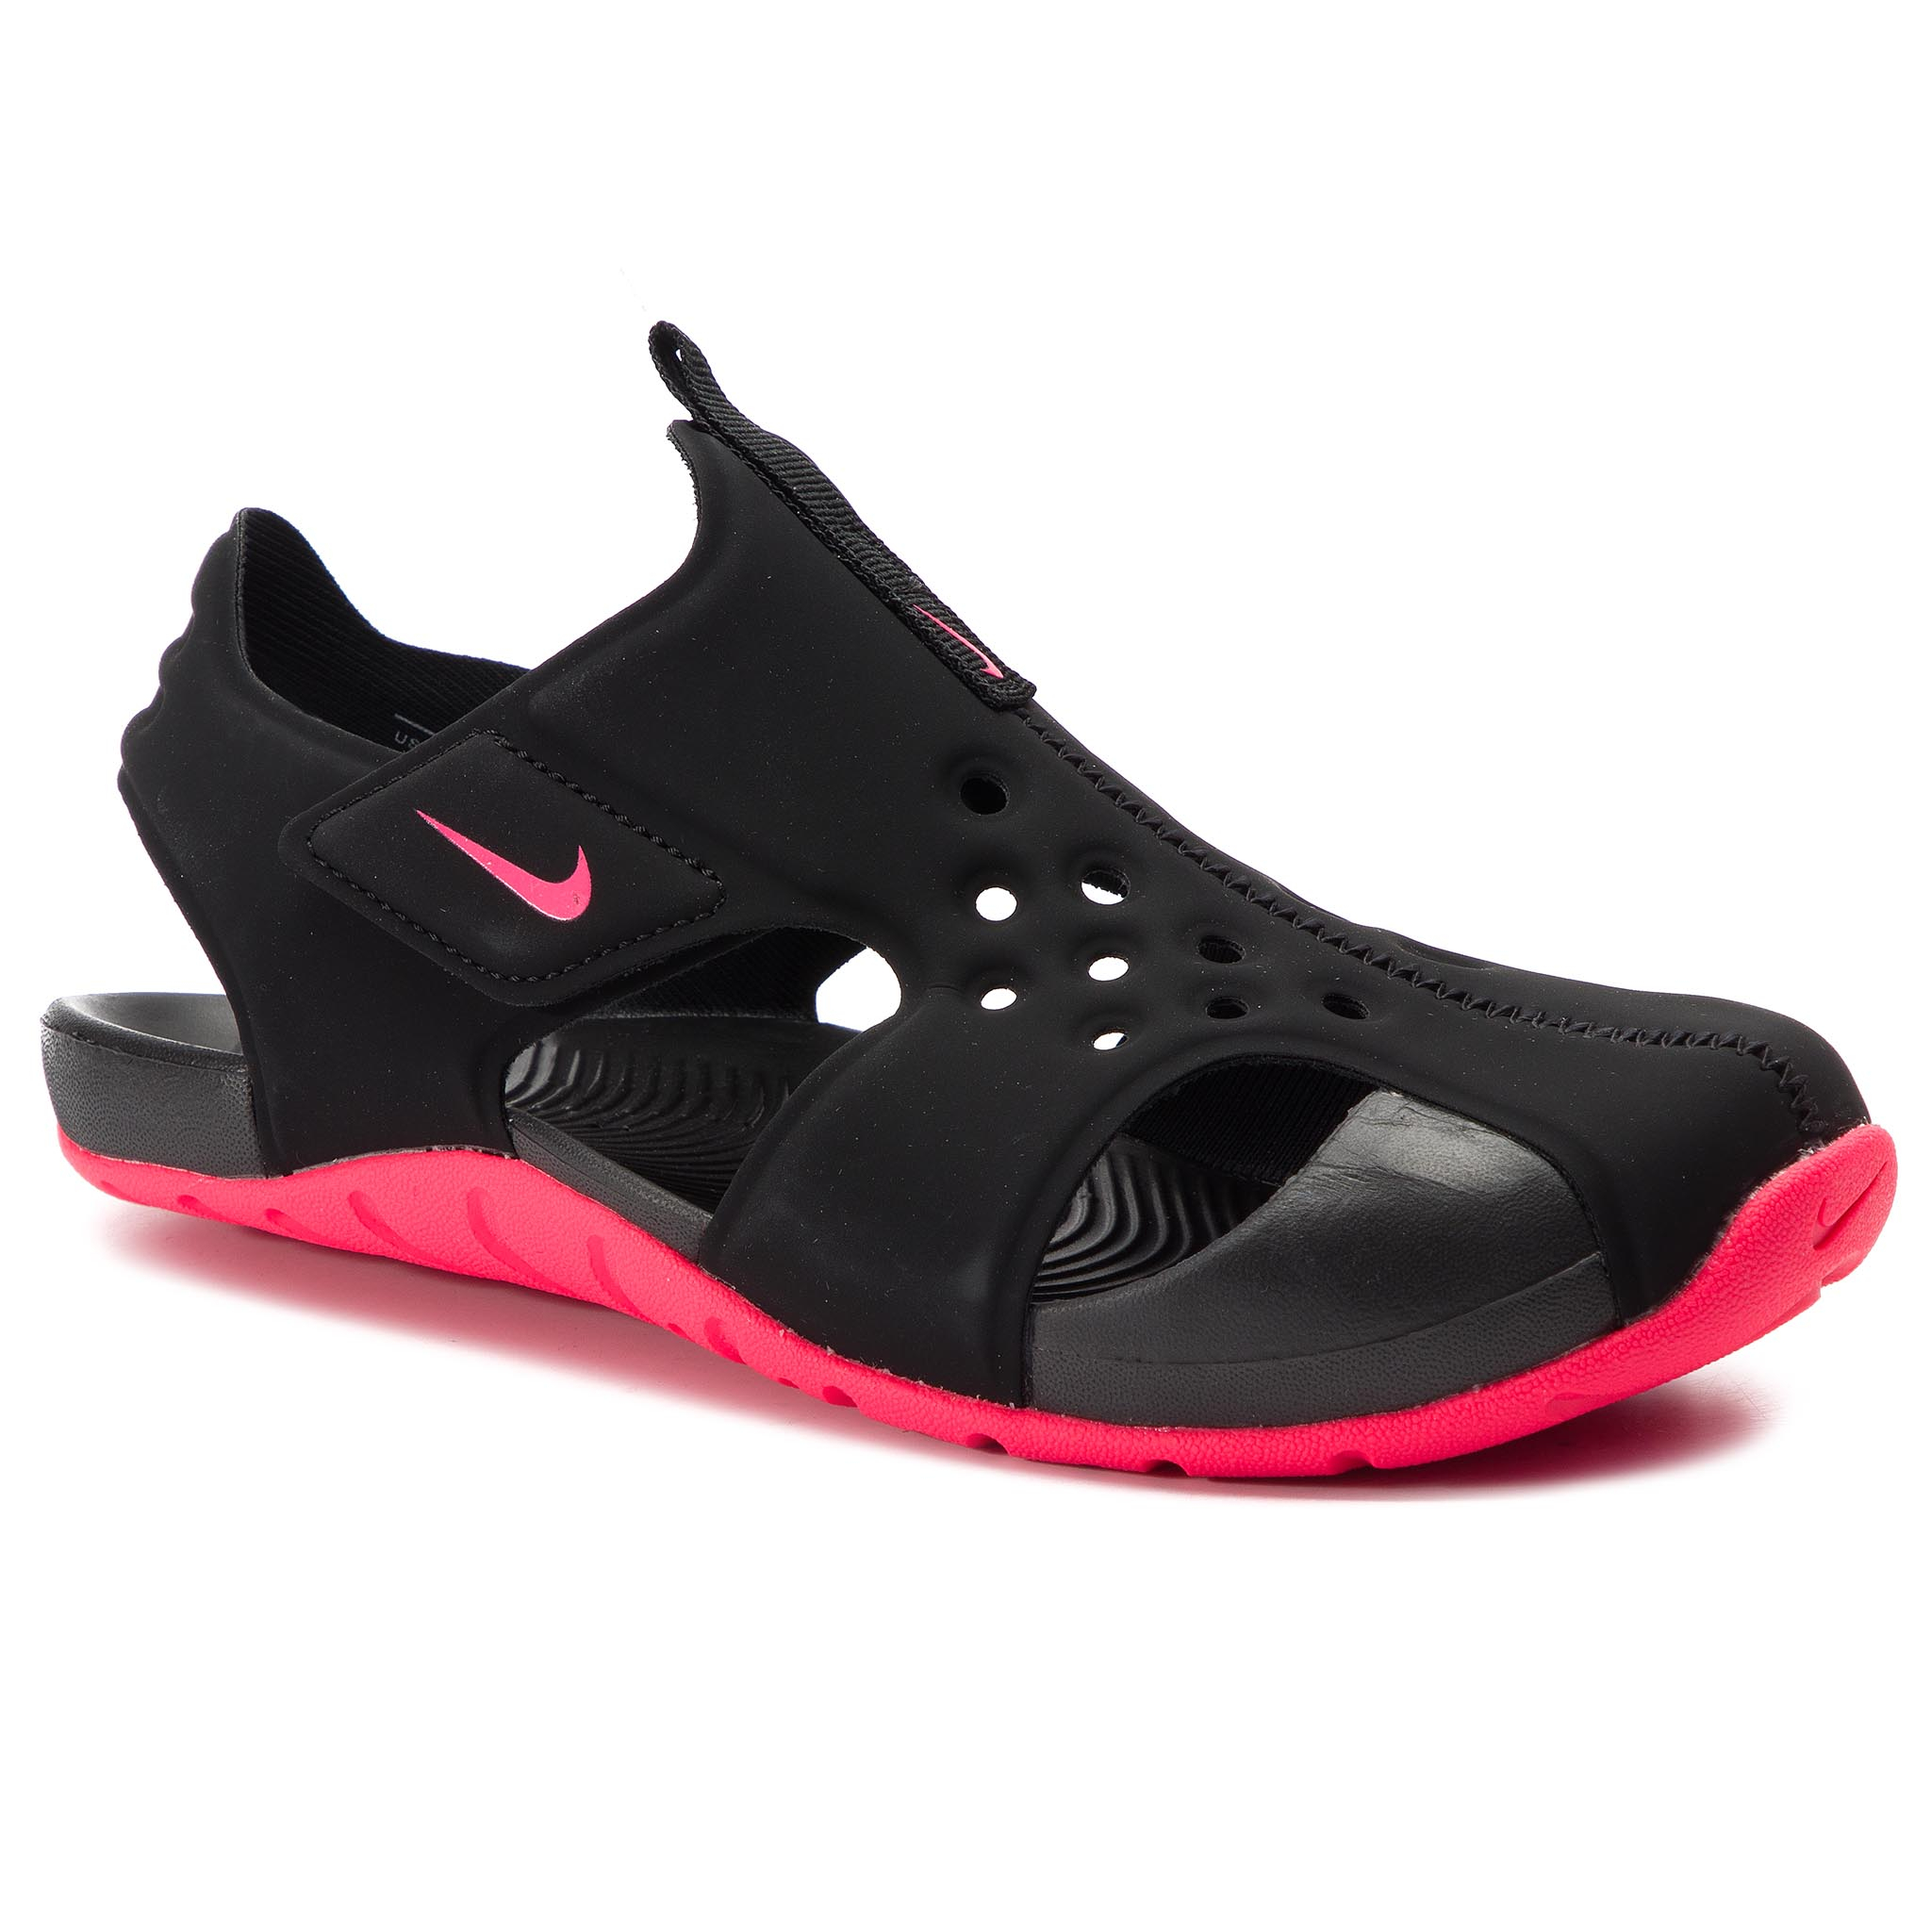 d7c12439057c Sandals NIKE - Sunray Protect 2 (TD) 943827 003 Black Racer Pink ...